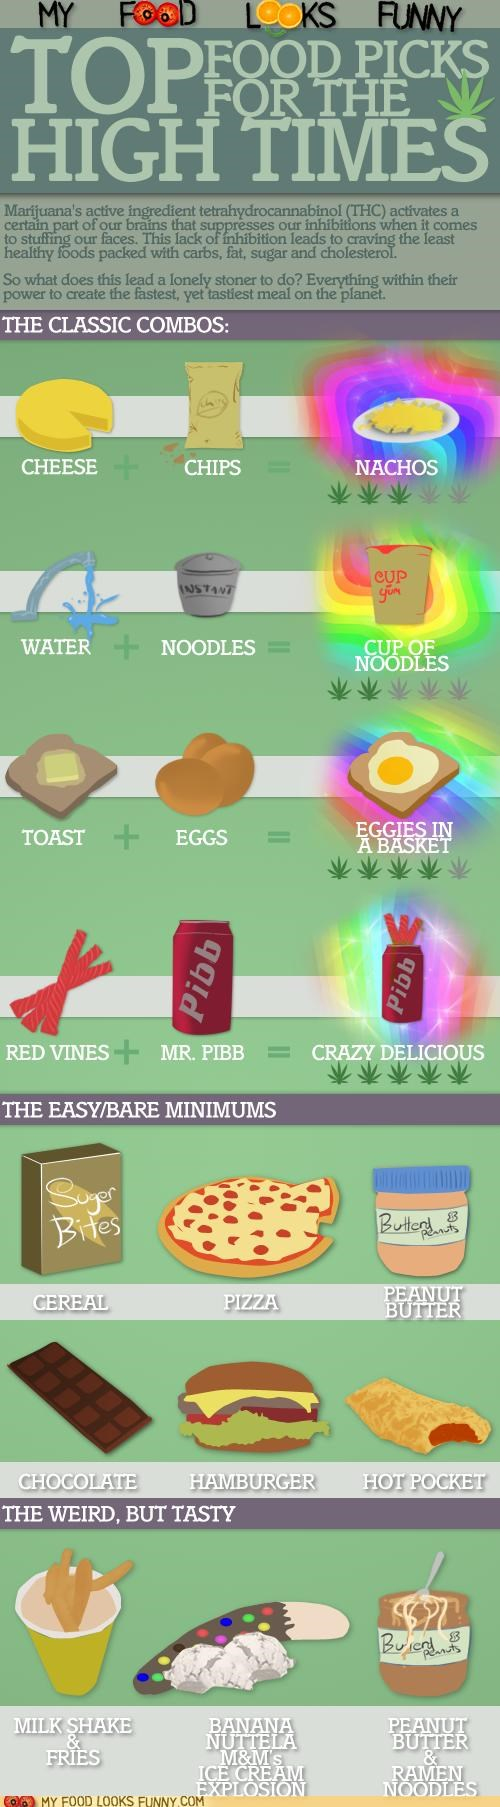 drugs,mary jane,munchies,snacks,stoner food